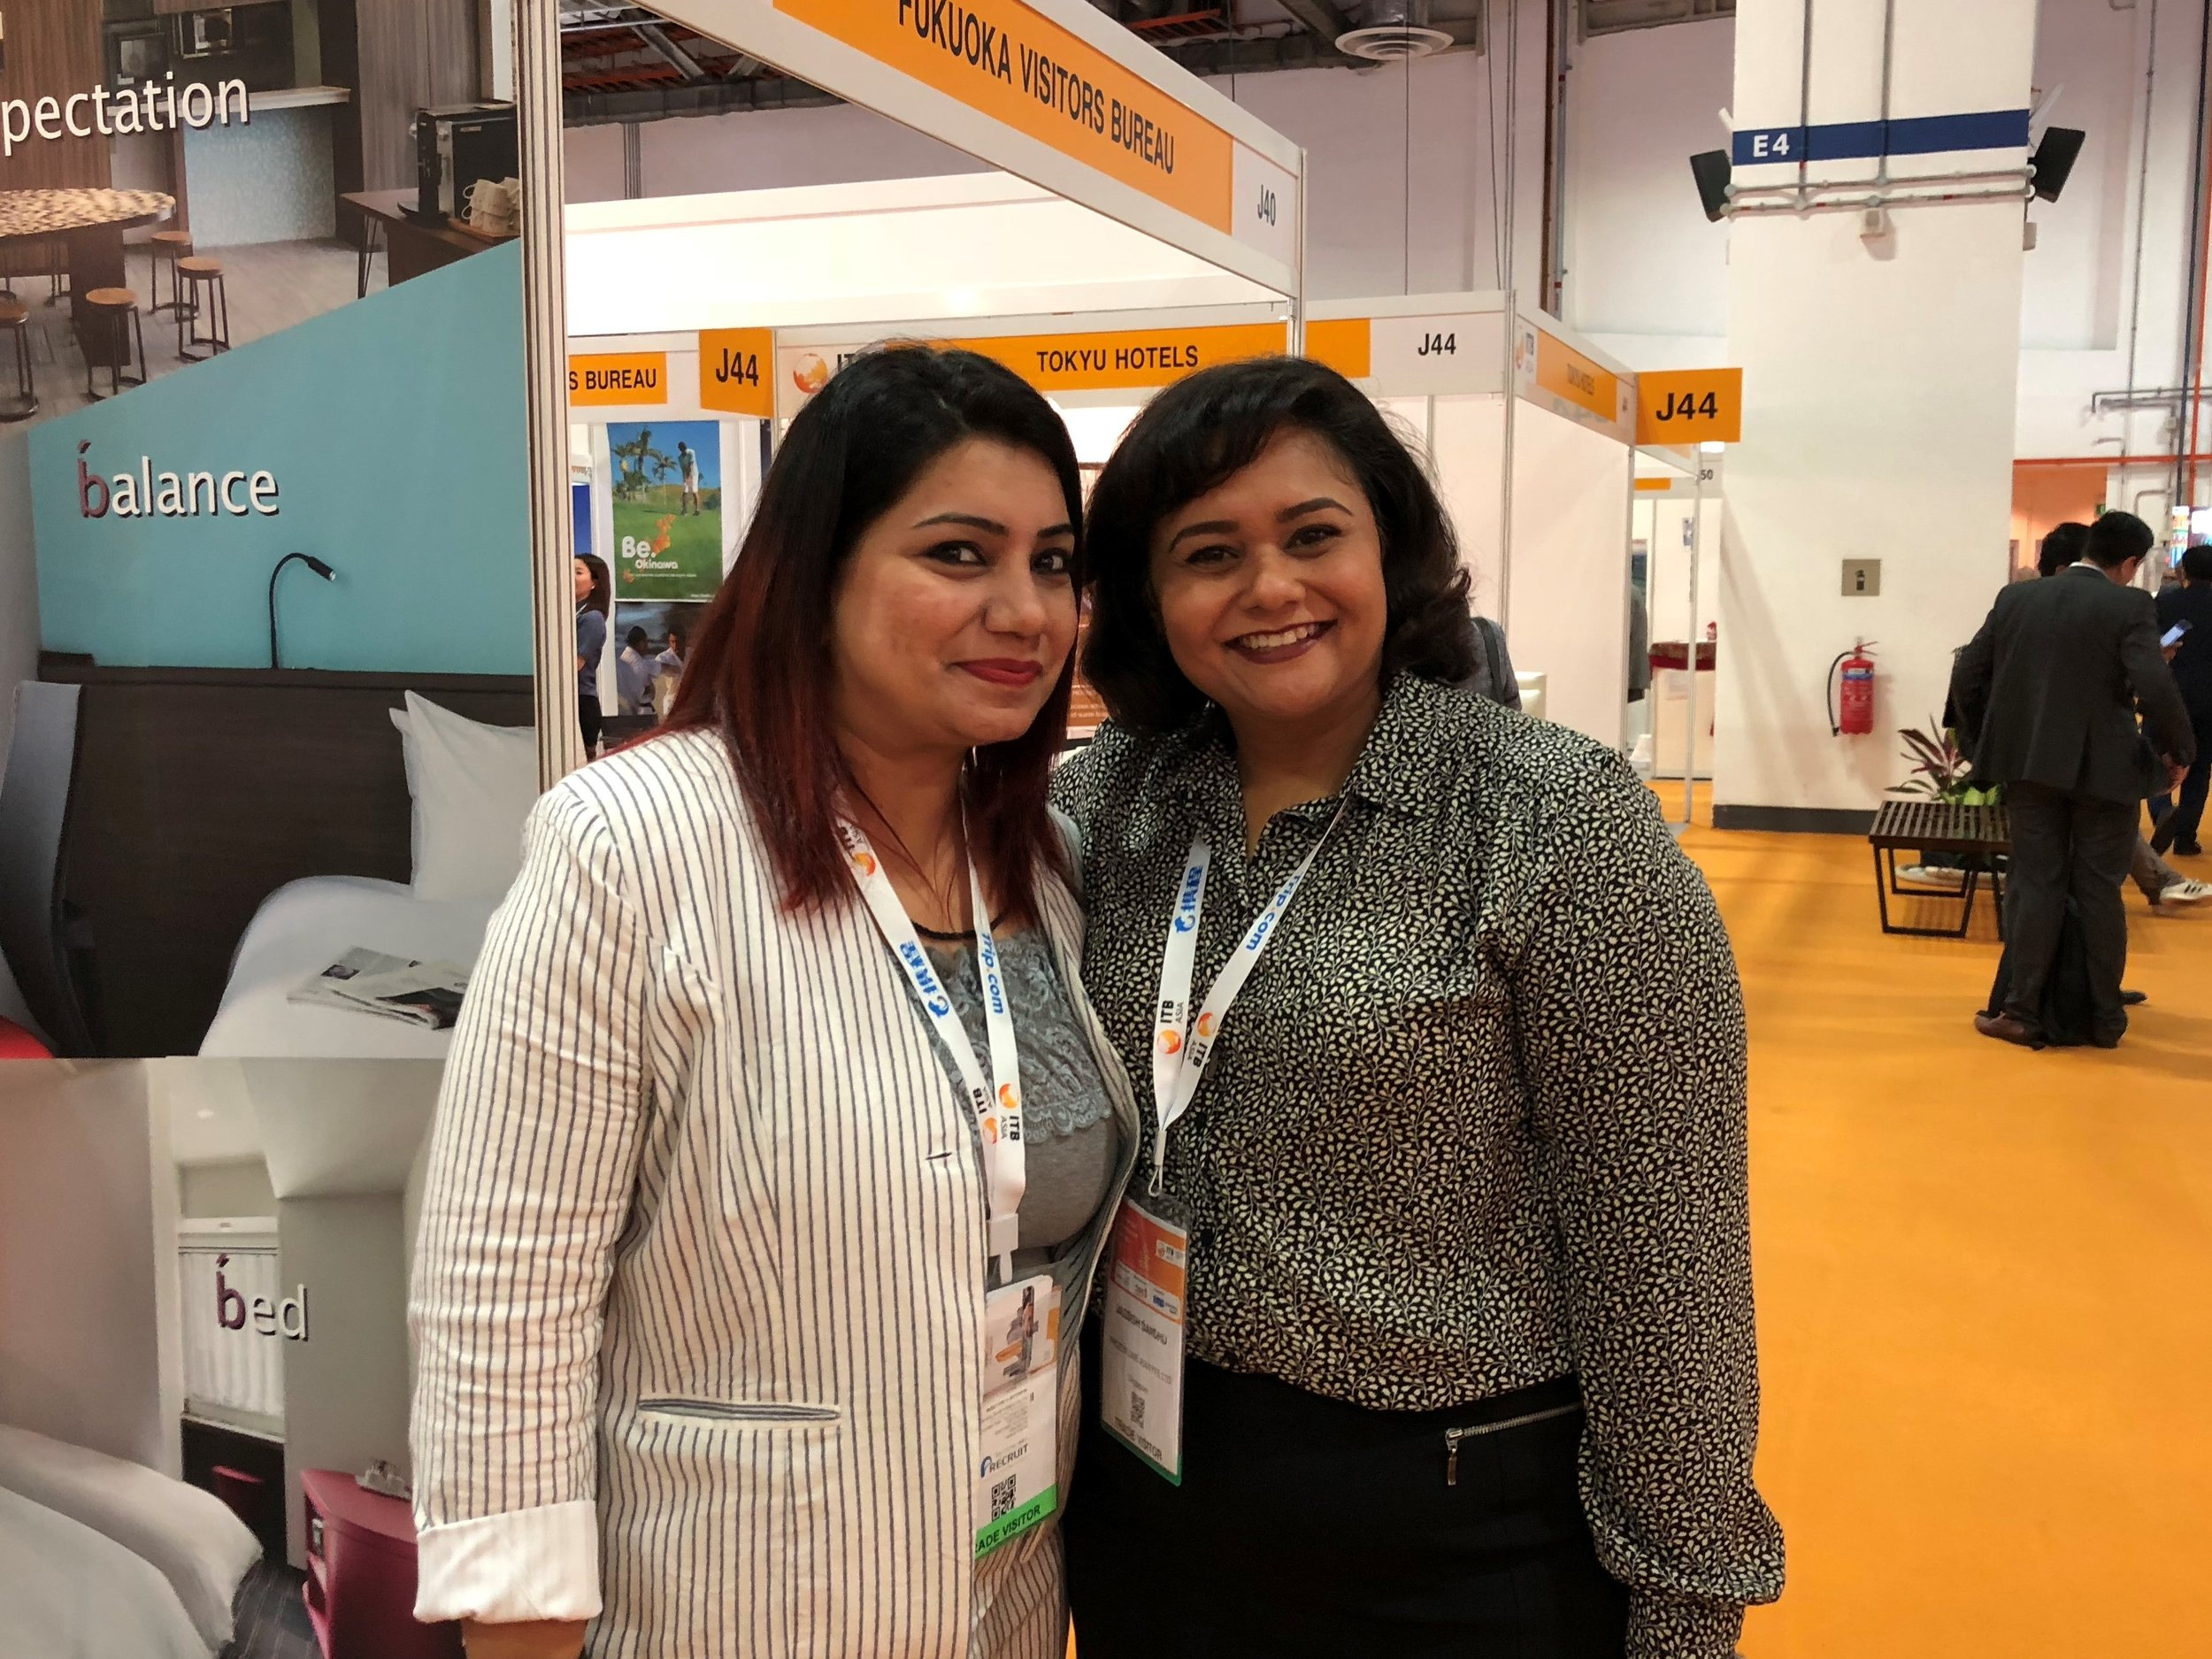 From left to right: Ms Preeti Bakshi (RateGain) and Ms Jagdish Sandhu (FLA).